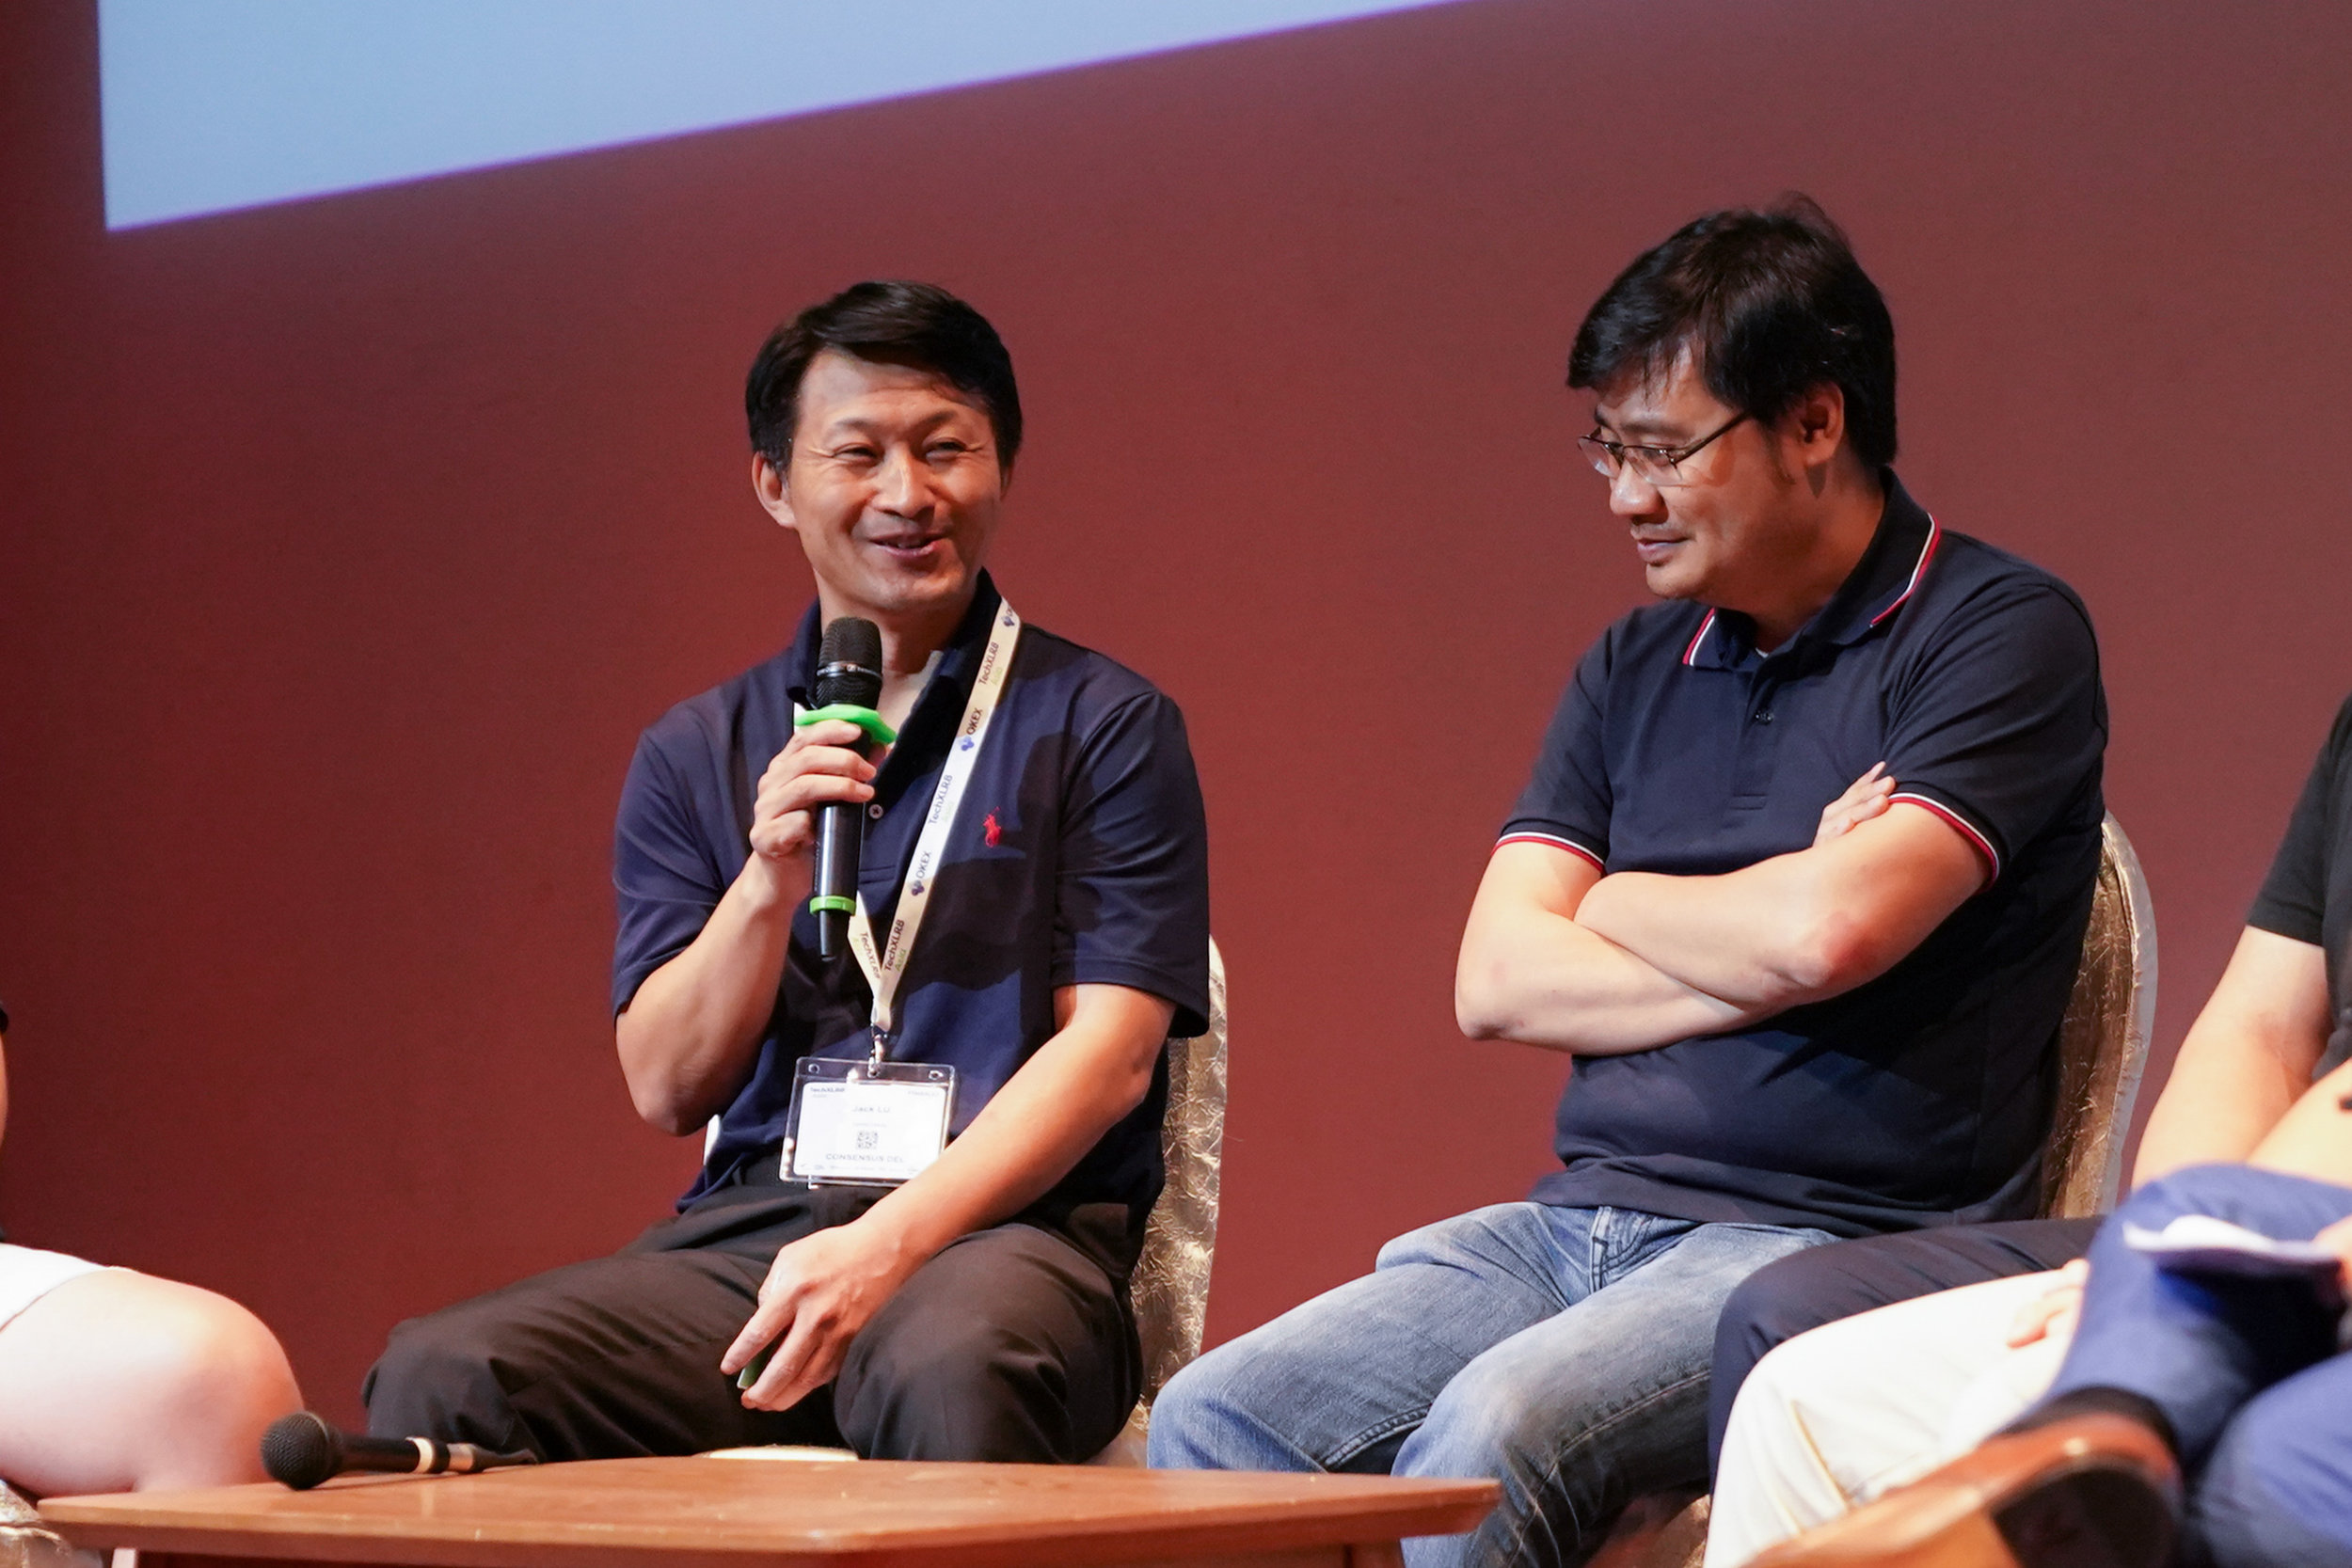 Picture of the insightful panel discussion featuring (from left) SoSo from Block Crafters Capital, Jack Lu from Wanchain and Long Vuong from Tomochain.